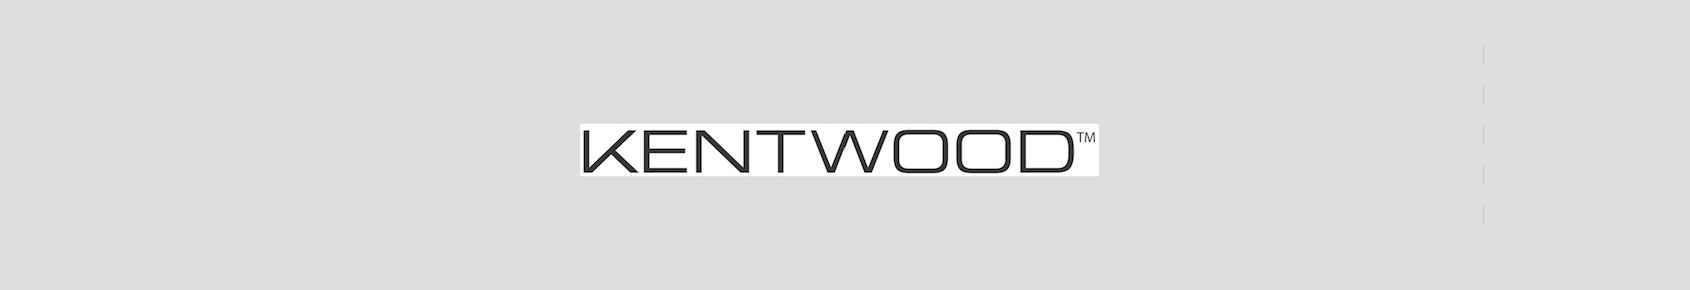 This is a picture of Kentwood Floors flooring company logo